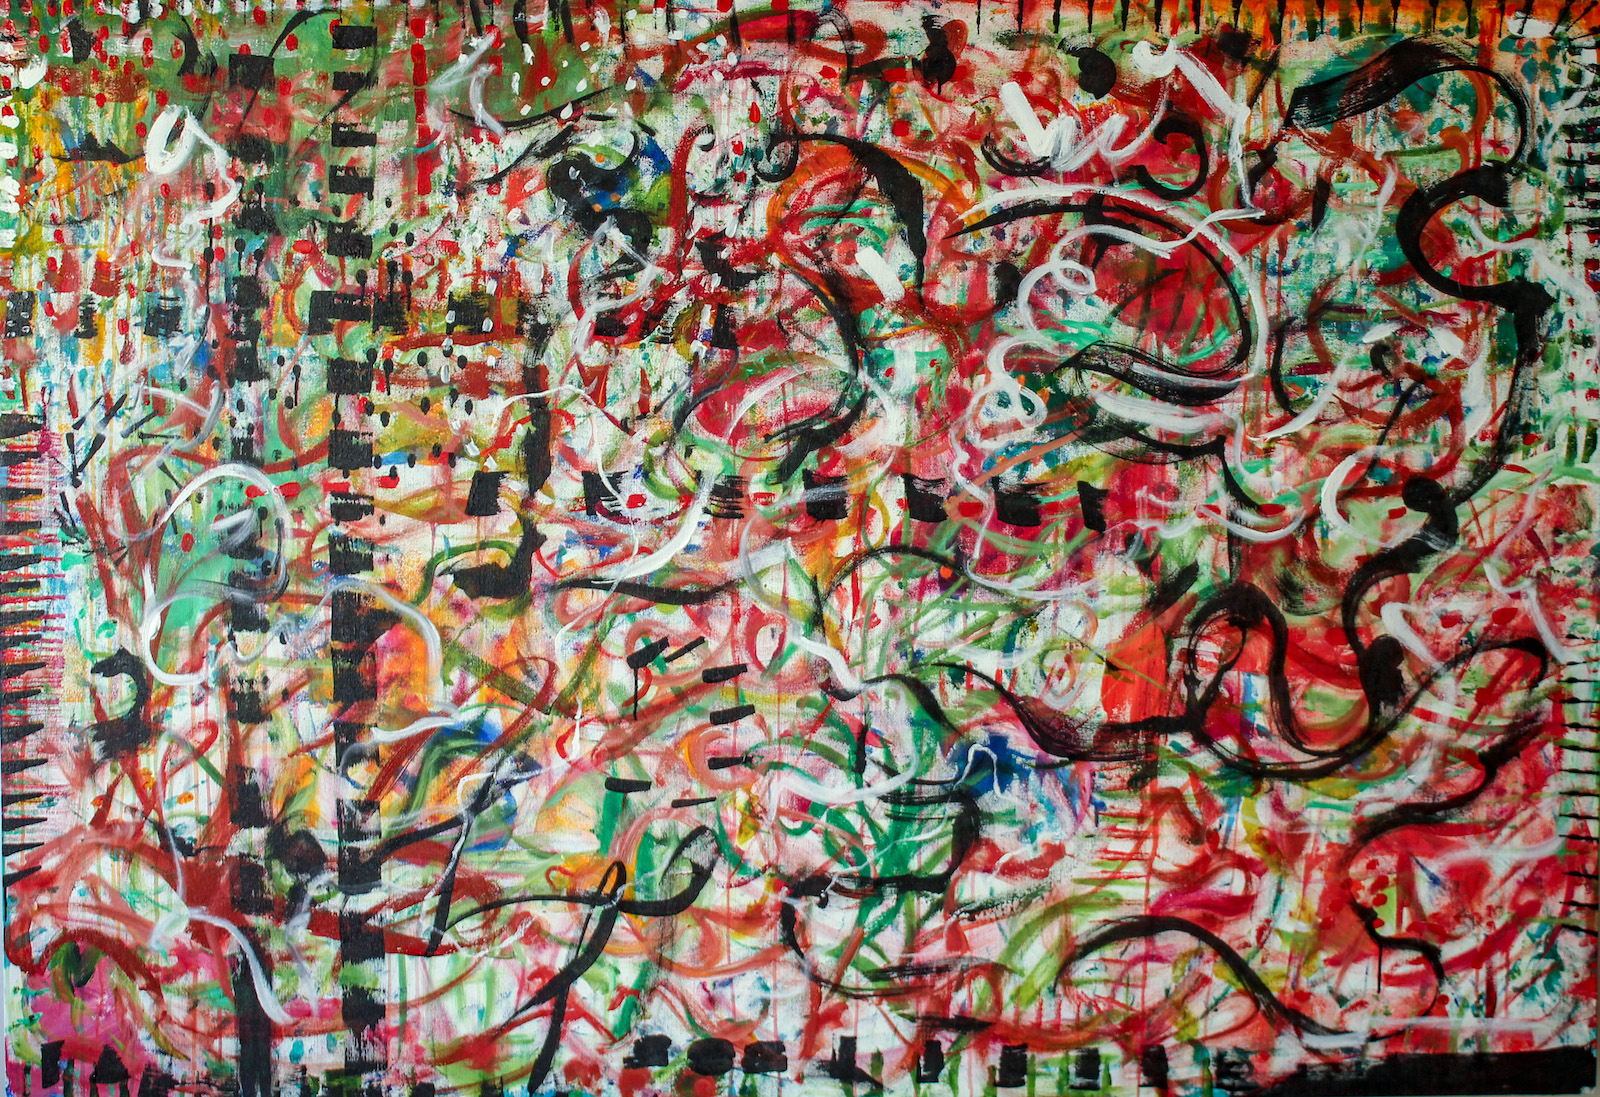 Predominantly red, black, and green abstract lines and shapes on canvas, with a black-lined border